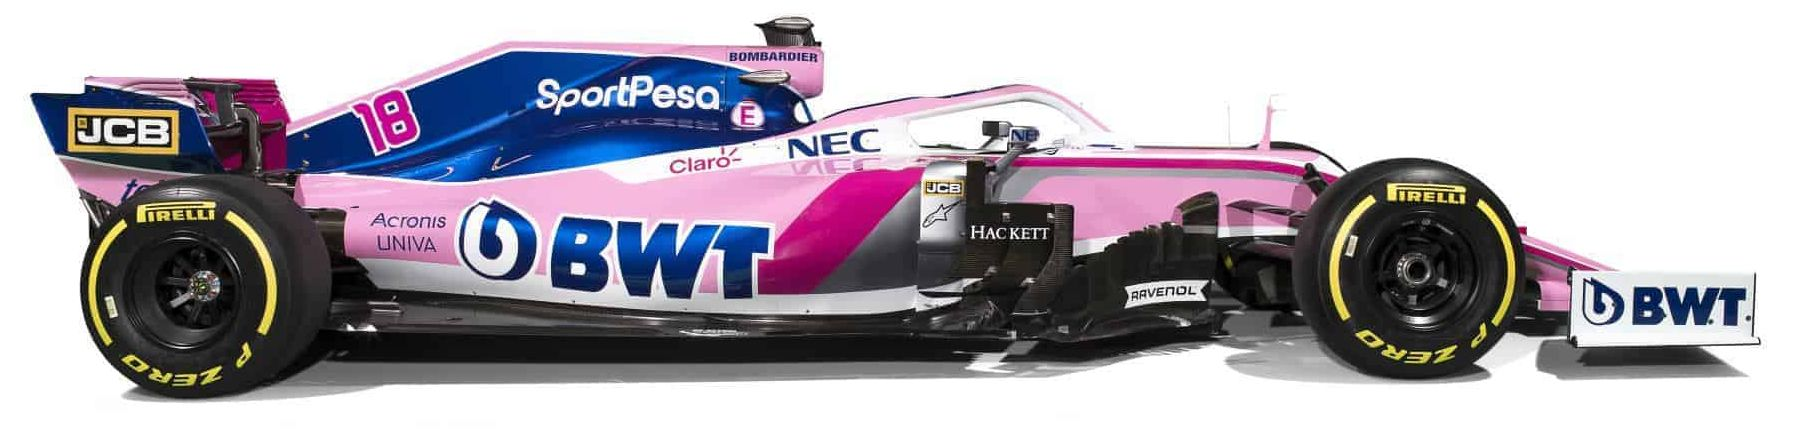 Sport Pesa Racing Point 2019 F1 launch Toronto studio photo car side view Photo Racing Point